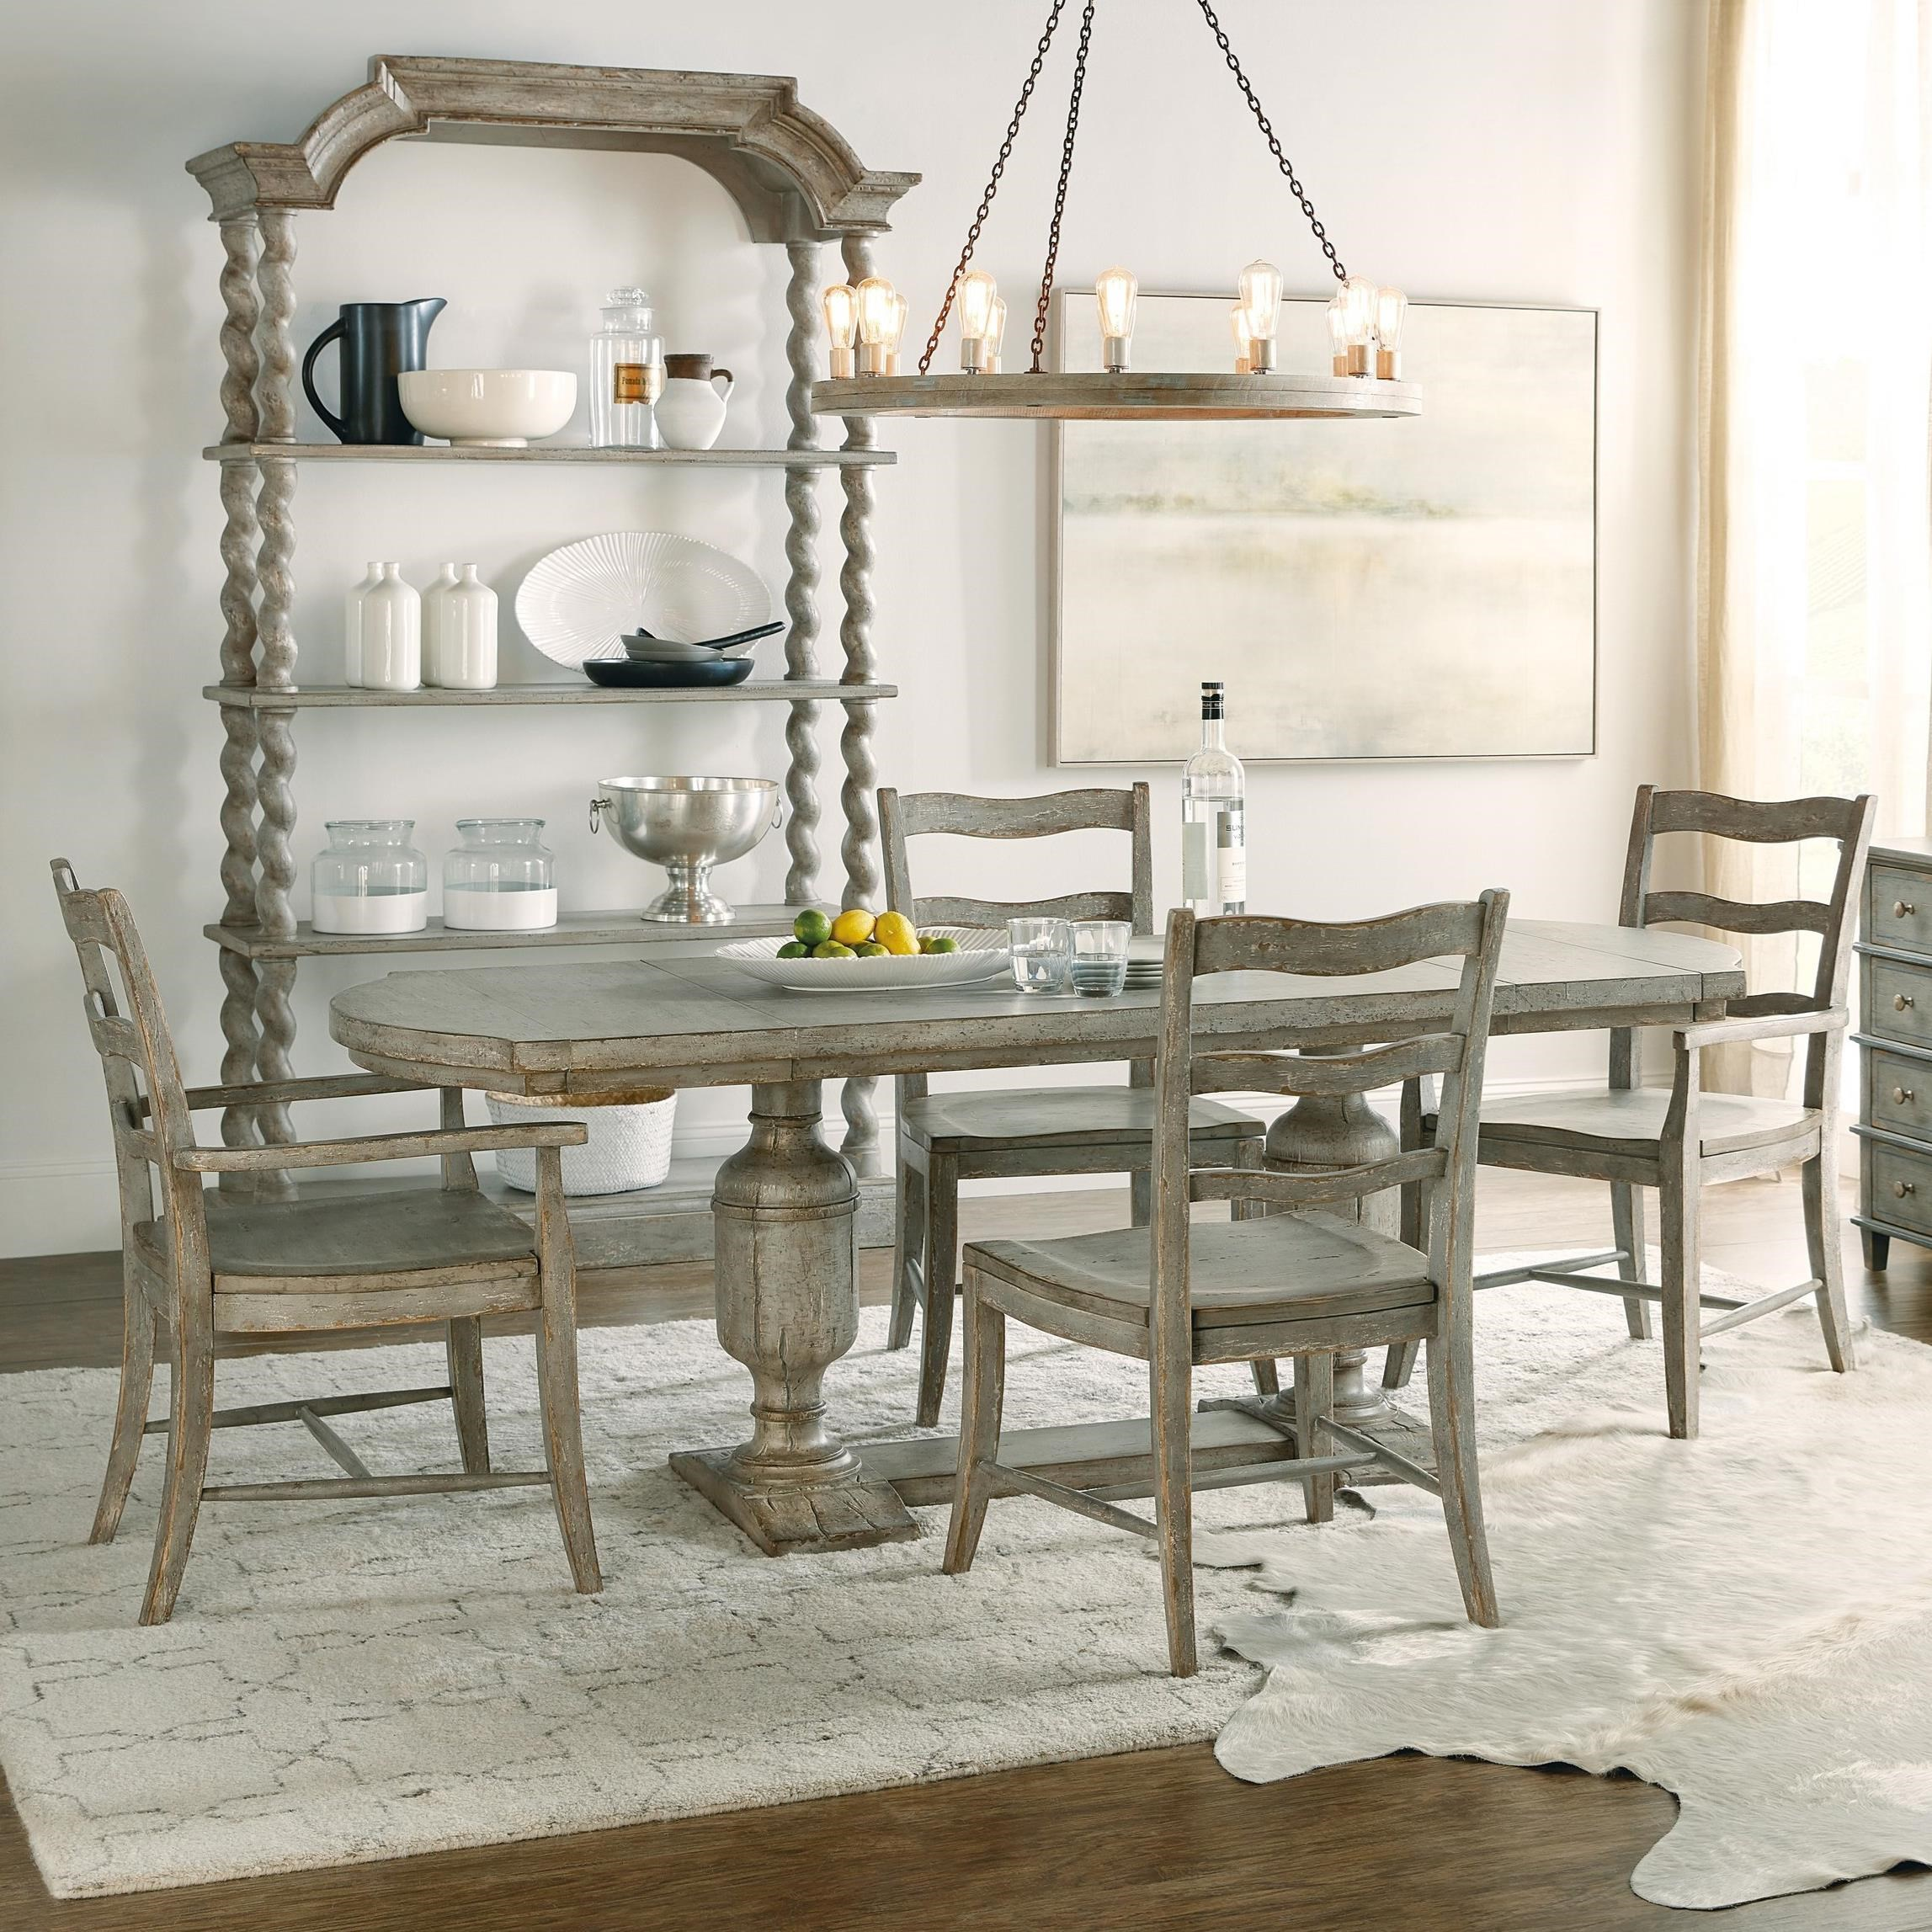 Alfresco 5-Piece Table and Chair Set by Hamilton Home at Sprintz Furniture